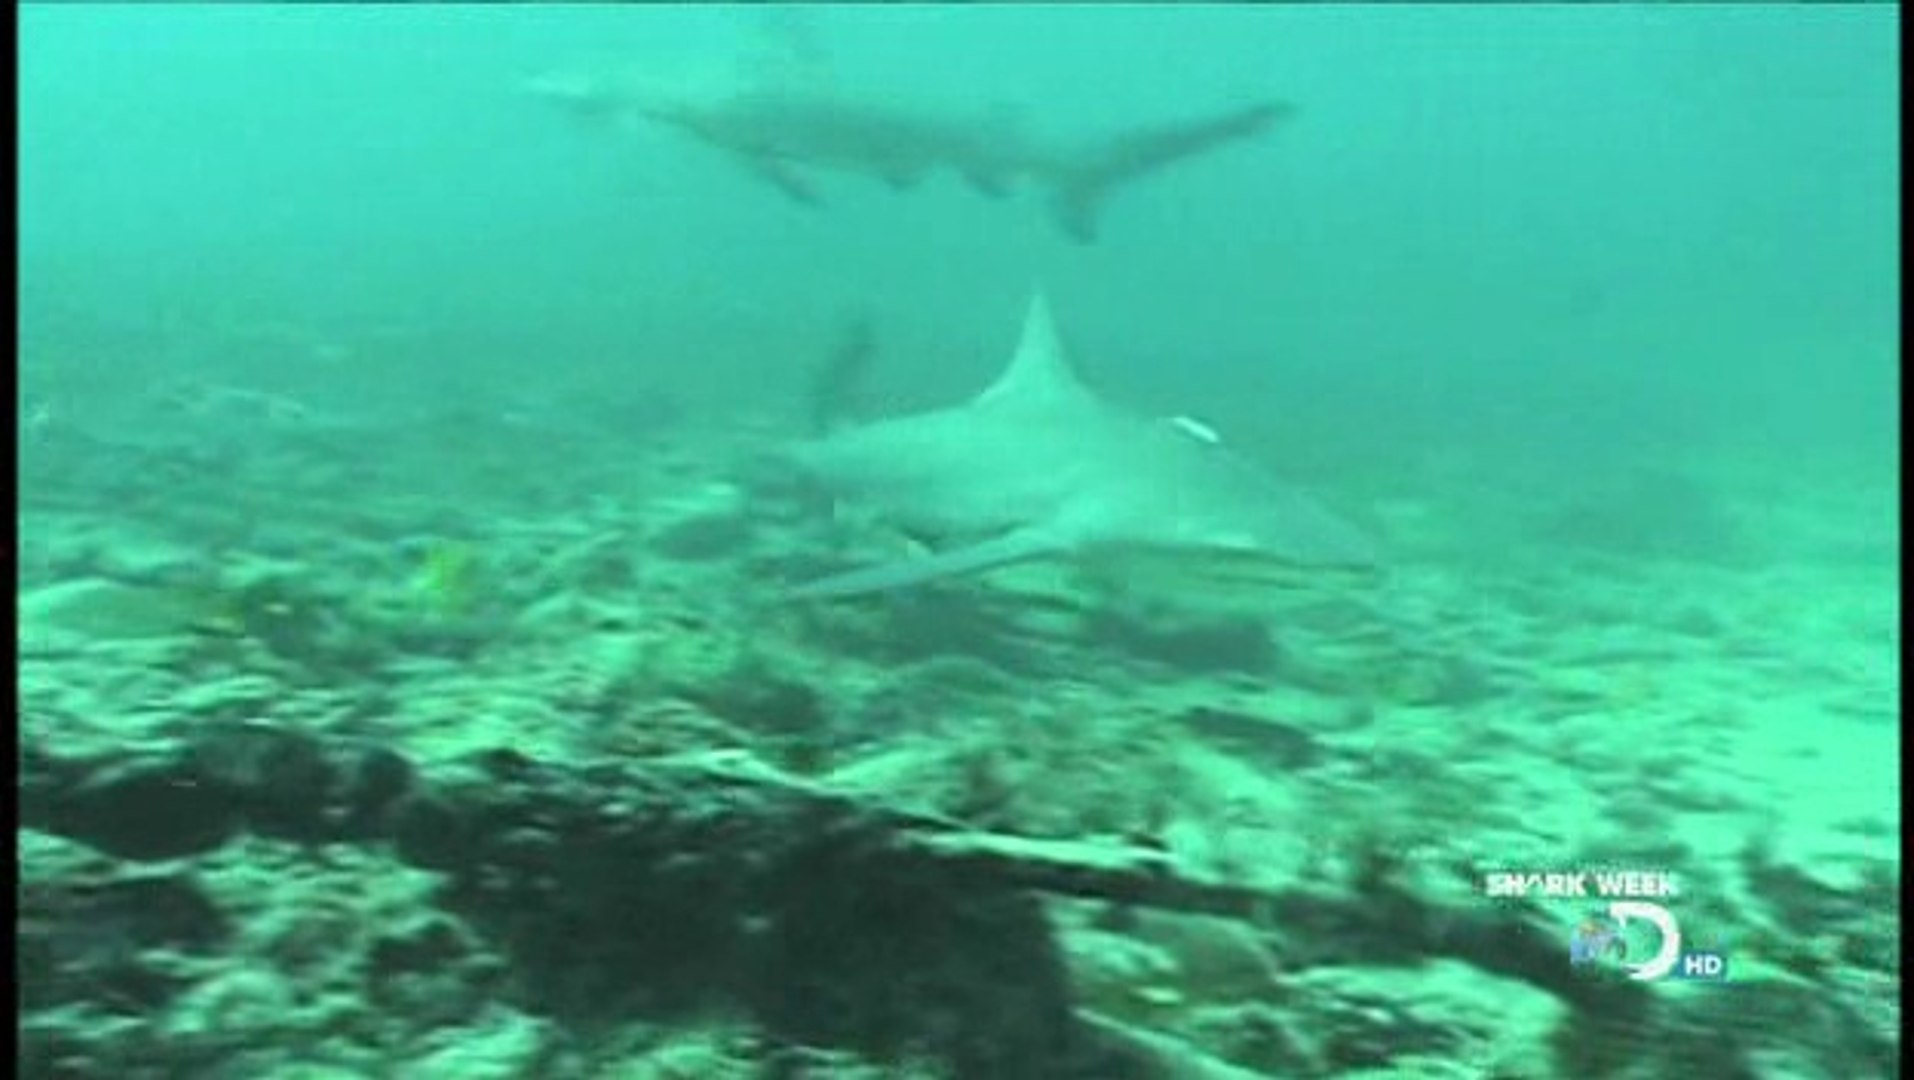 SHARK WEEK - DAY OF THE SHARK - Discovery Channel - Sharks Animals Nature  (documentary)